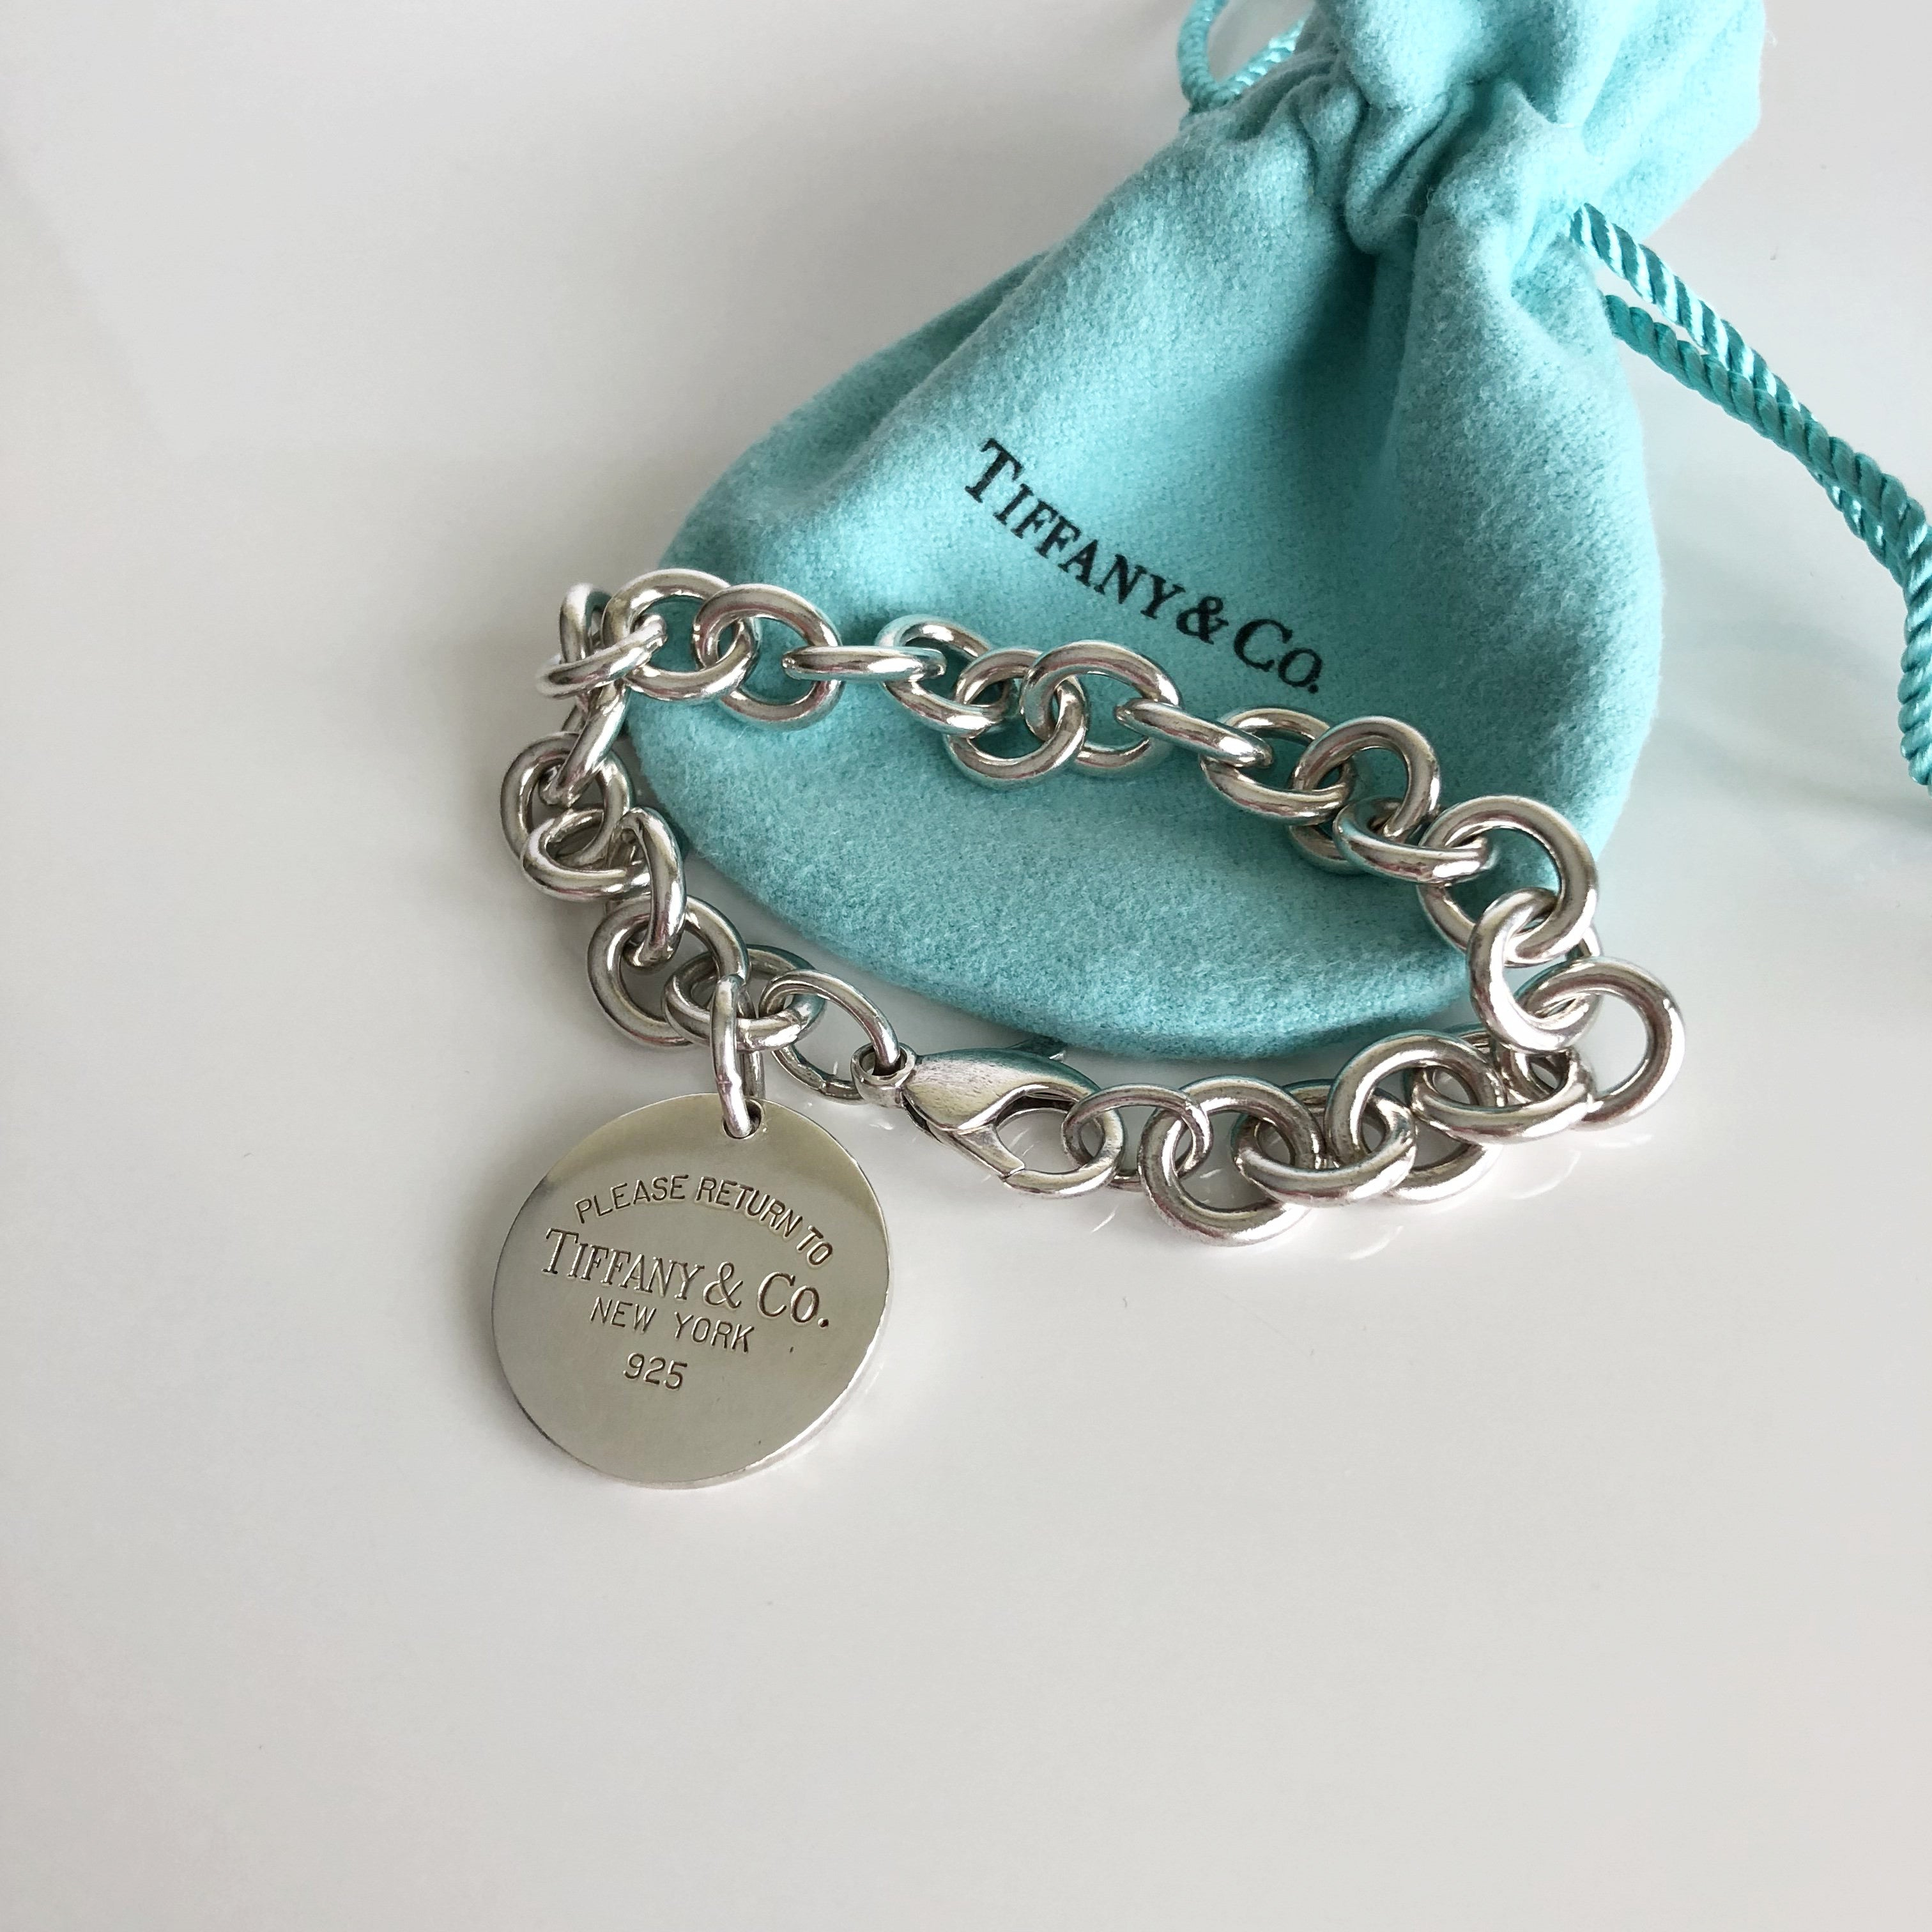 Authentic TIFFANY & CO Round 1837 Sterling Silver Bracelet